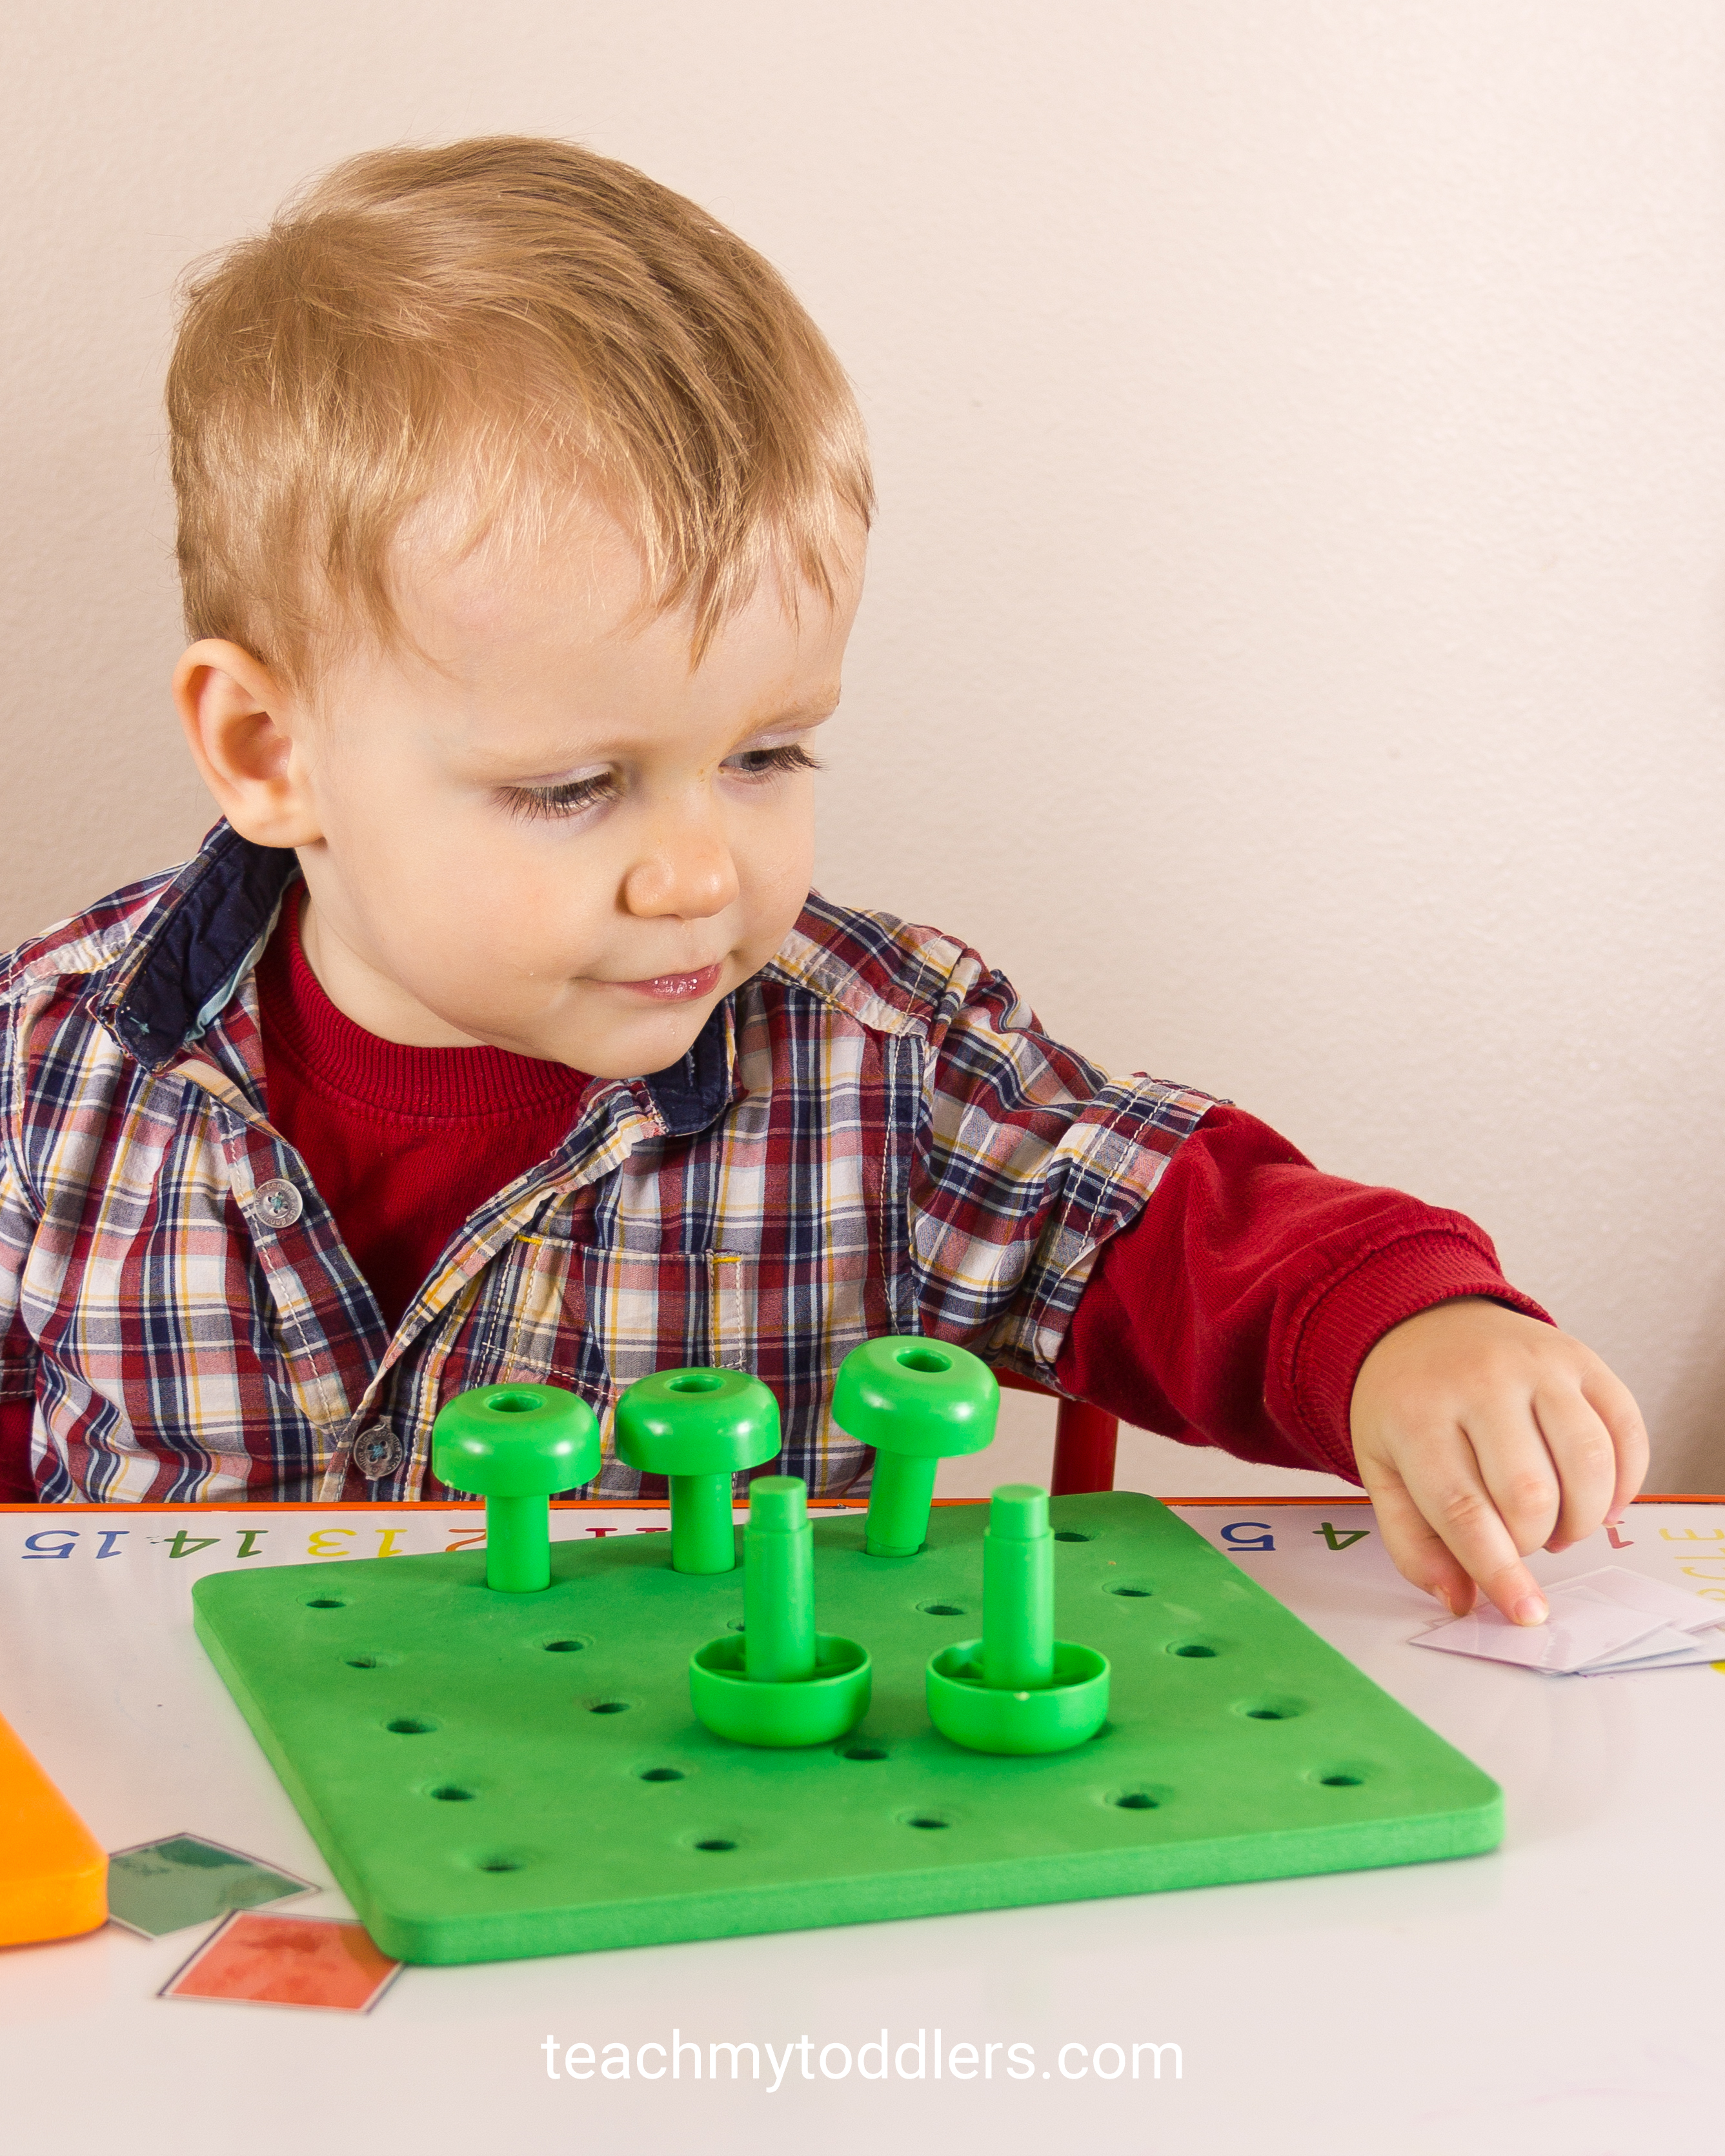 Your toddlers can learn colors with these pegs and peg boards